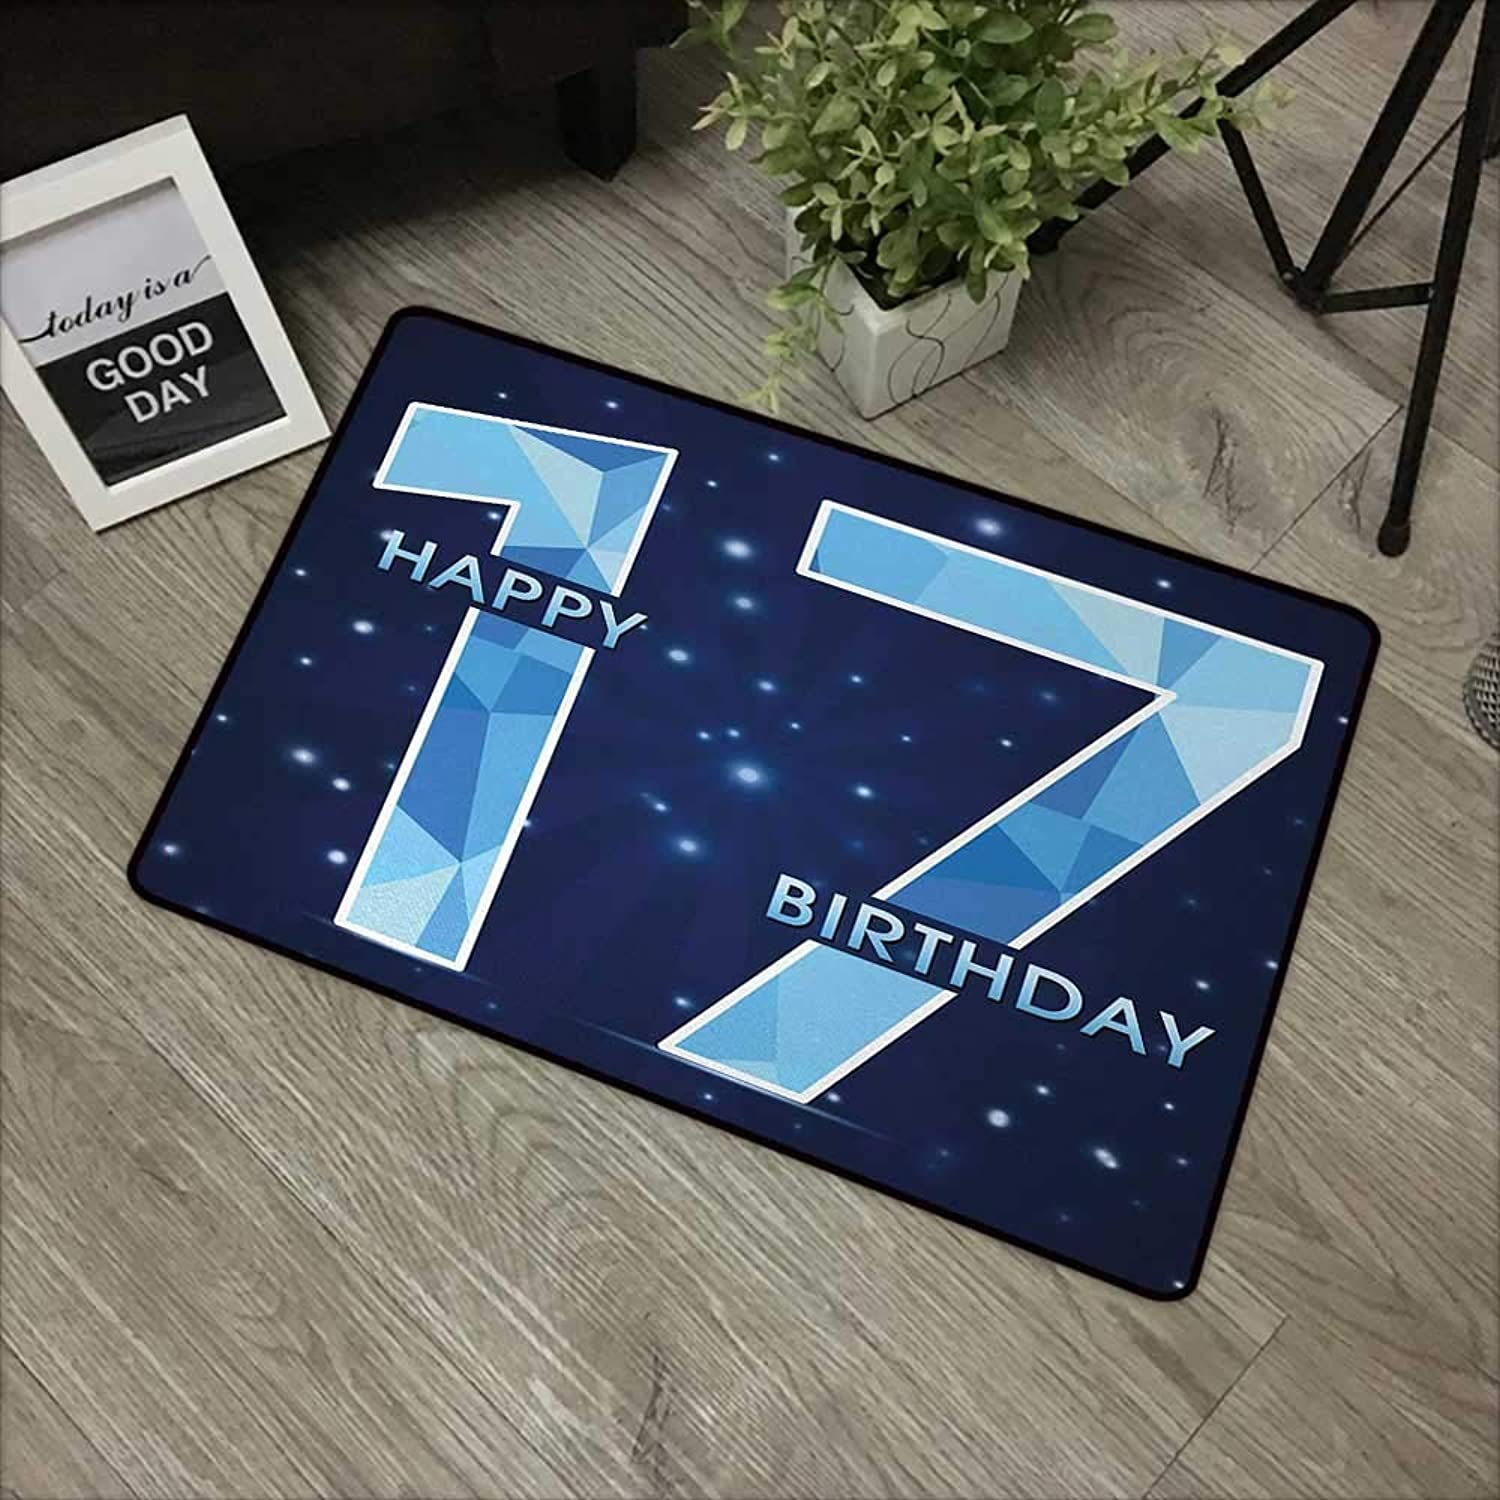 Pad W35 x L59 INCH 17th Birthday,Space Stage Theme Image with Star Like Dots Seventeen Youth Theme,Sky bluee and Navy bluee Non-Slip, with Non-Slip Backing,Non-Slip Door Mat Carpet